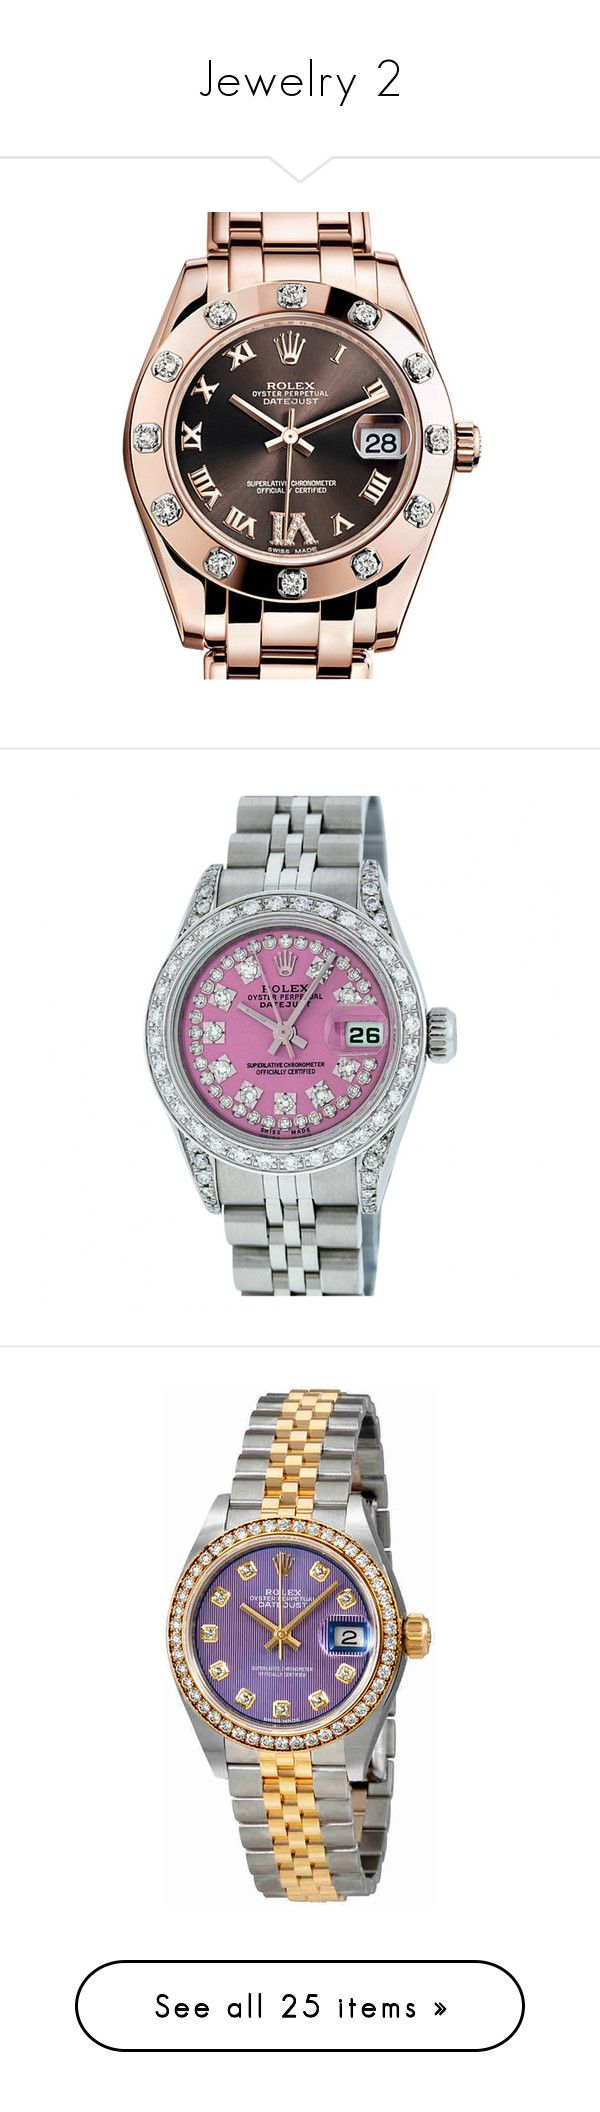 """Jewelry 2"" by simplefashionblack ❤ liked on Polyvore featuring jewelry, watches, 18 karat gold watches, automatic movement watches, diamond bezel watches, rolex wrist watch, 18k gold jewelry, pink, pre owned jewelry and preowned watches"